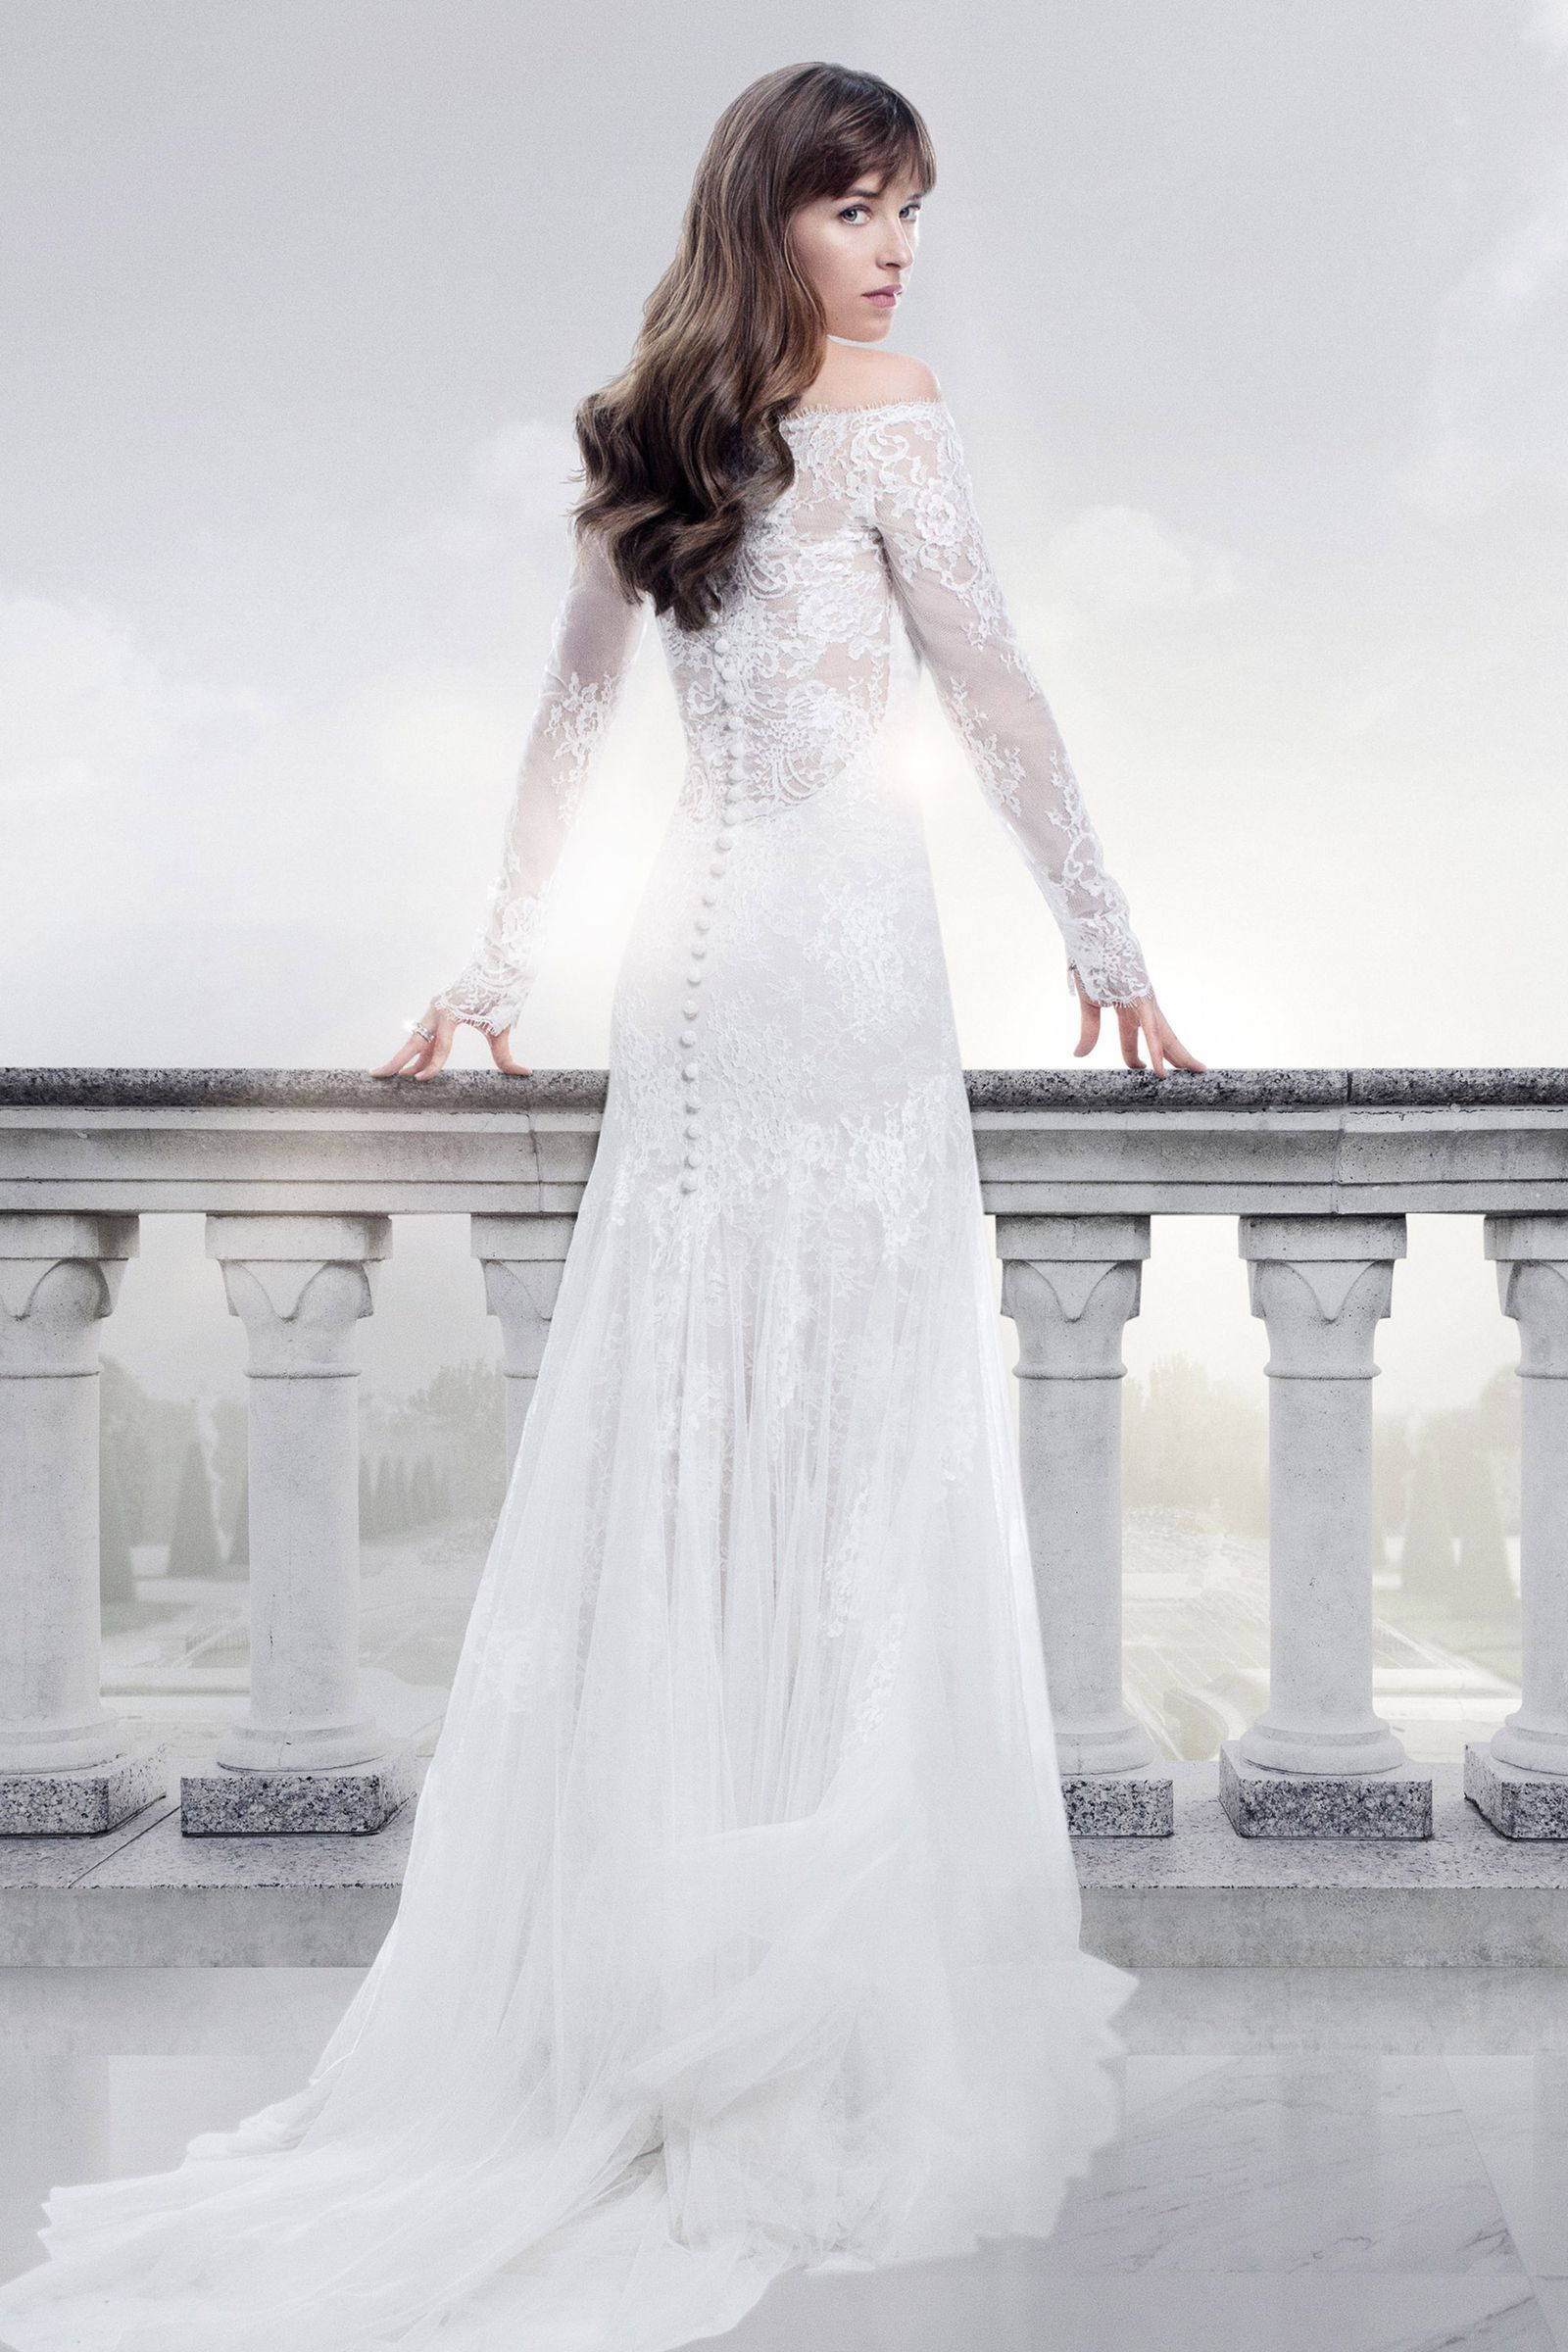 20 Of The Most Unforgettable Film Wedding Dresses Movie Wedding Dresses Grey Wedding Dress Wedding Dress Reveal [ 2400 x 1600 Pixel ]